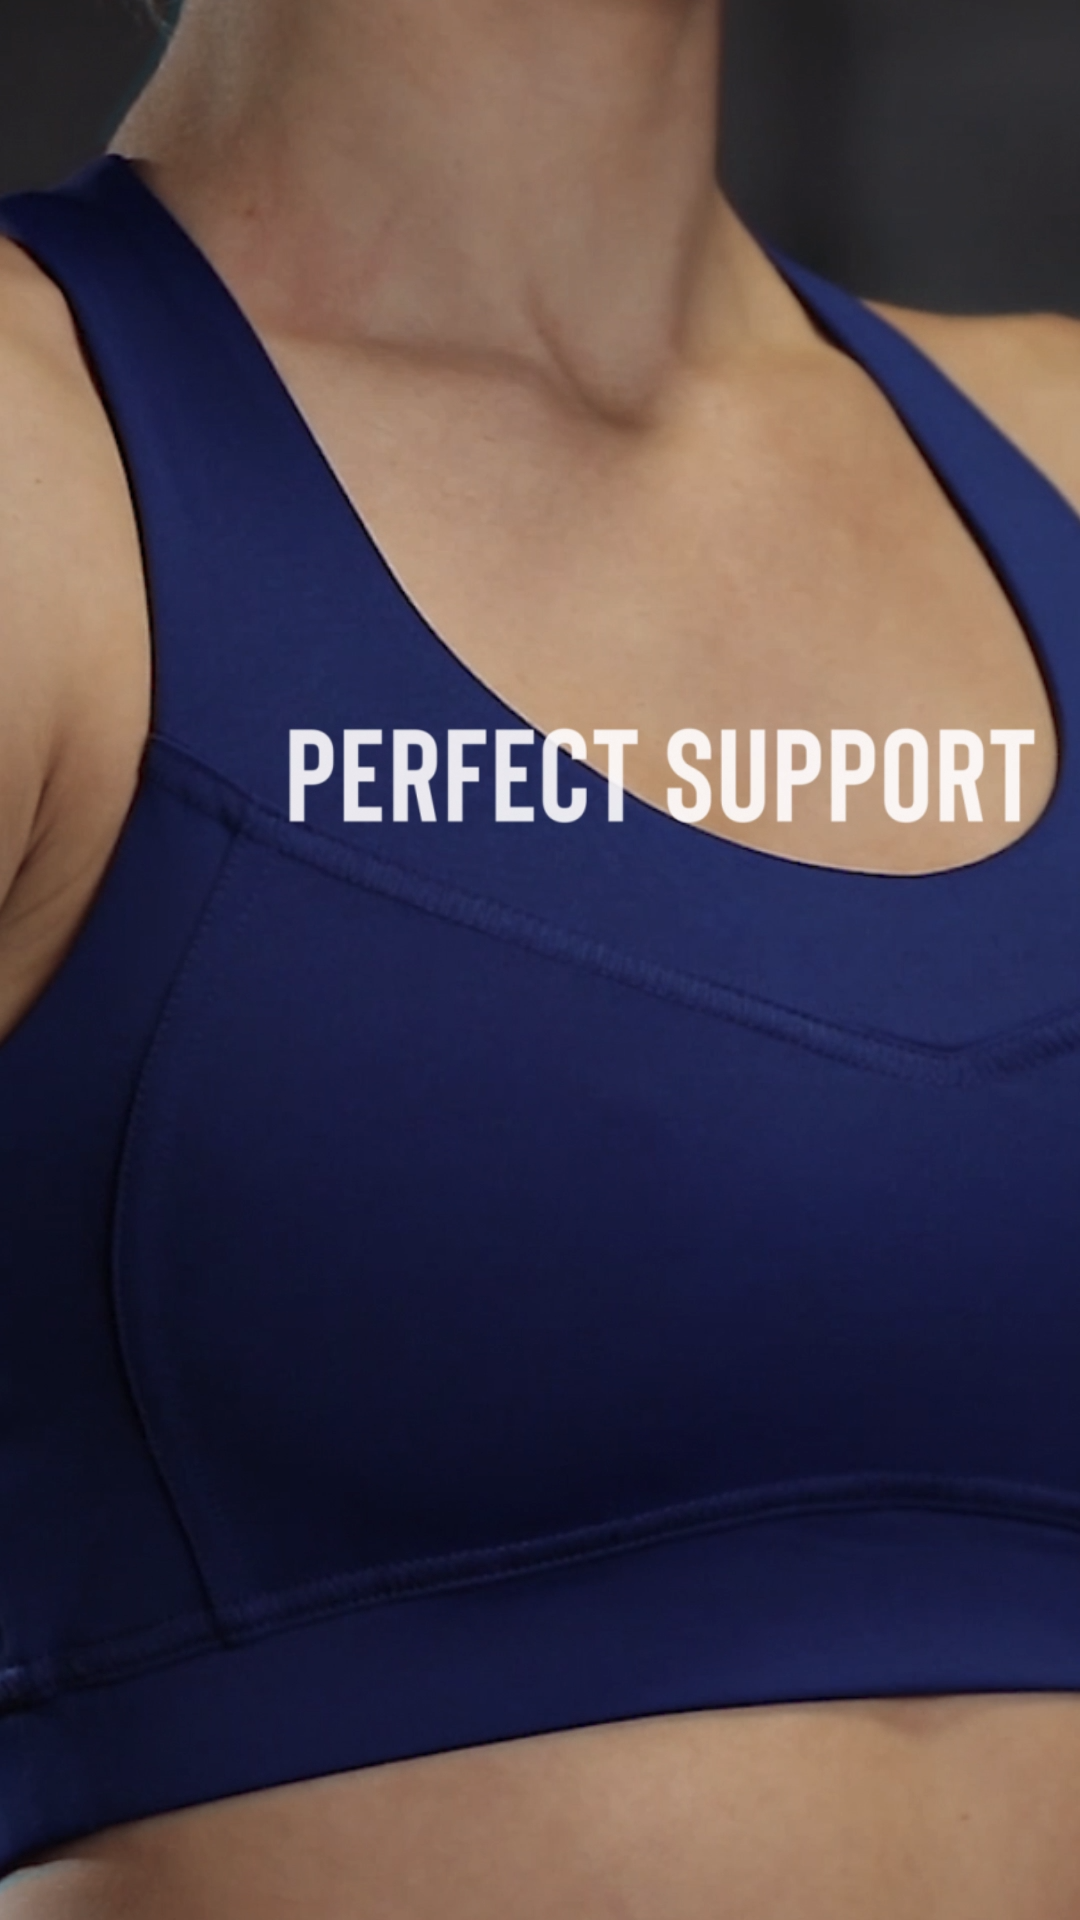 Offering support for high-intensity workouts, the altium bra is snug